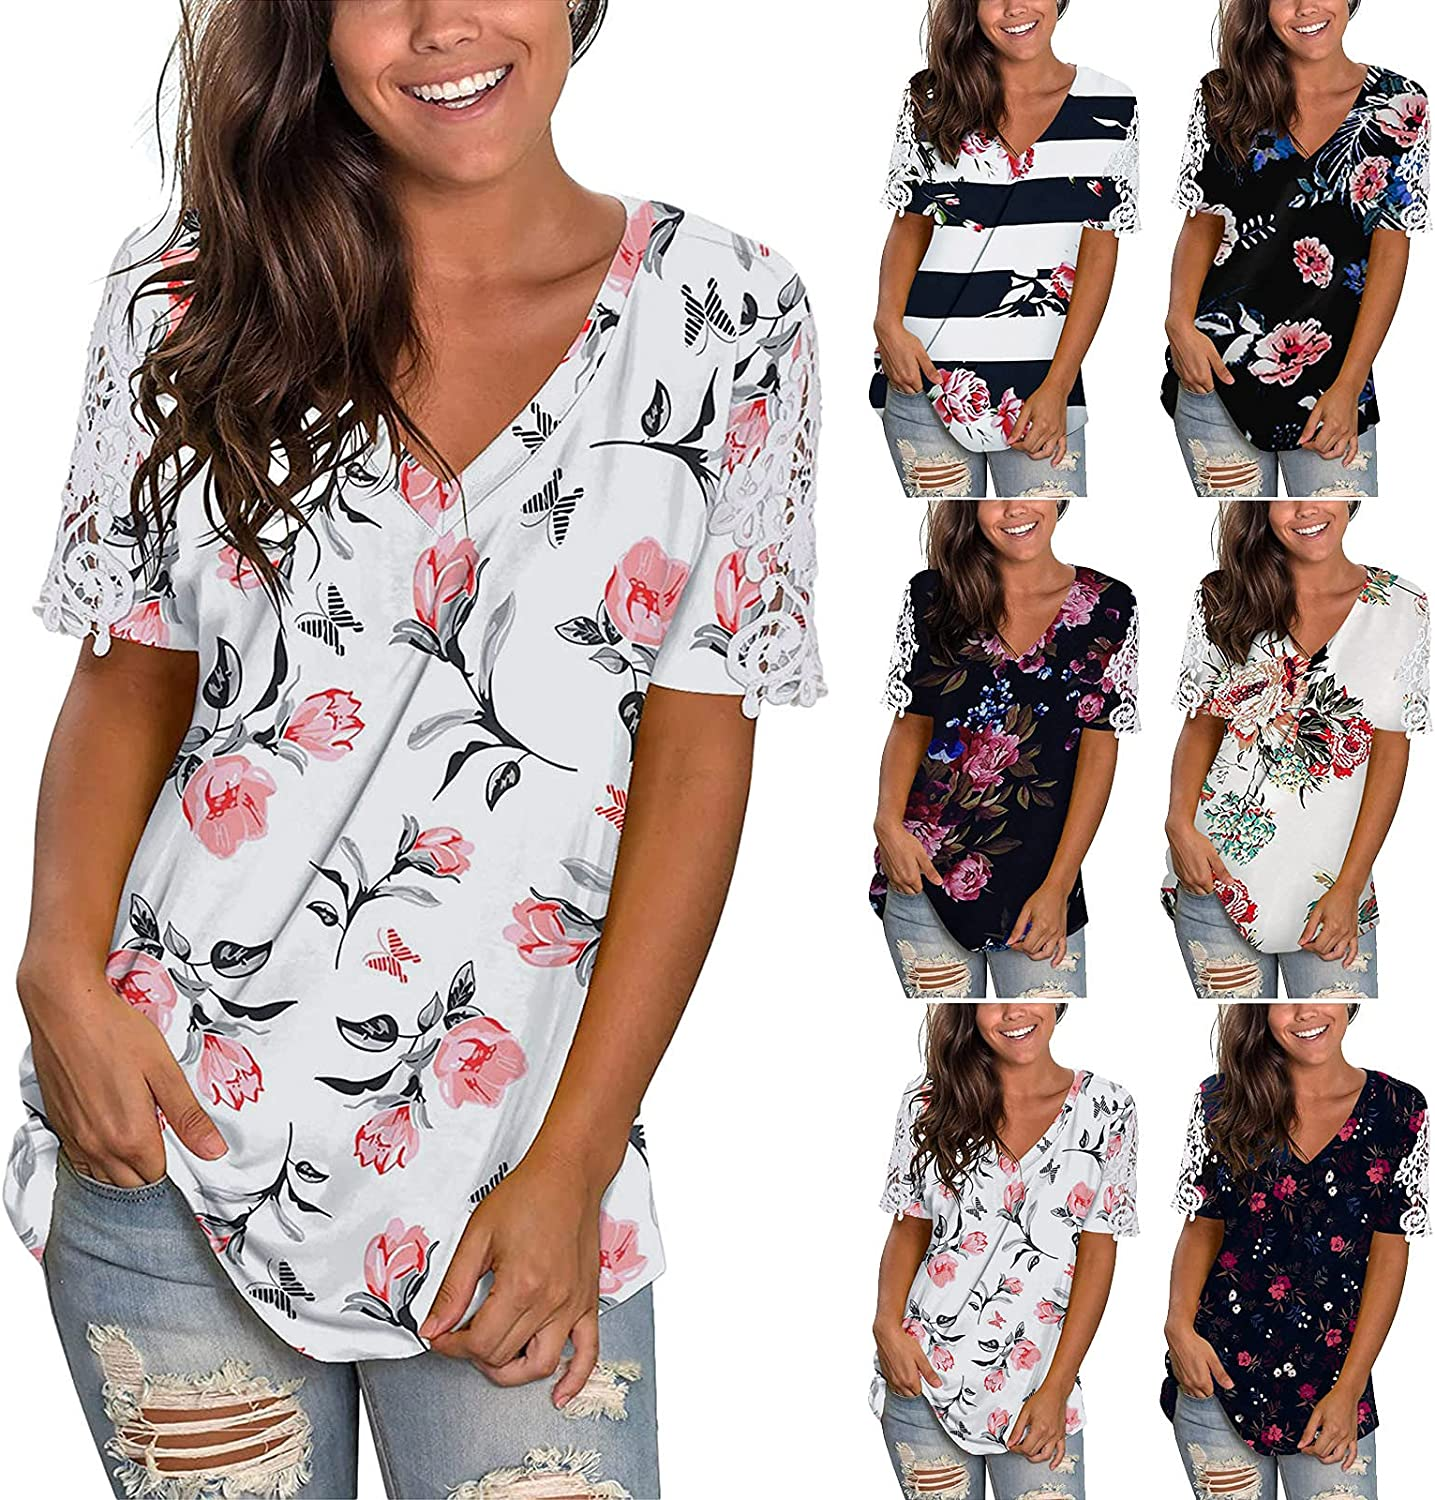 Womens Summer Tops, Women Gradient T-Shirt V-Neck Casual Tees with Sleeves Tops Printed Side Split Tunic Blouses